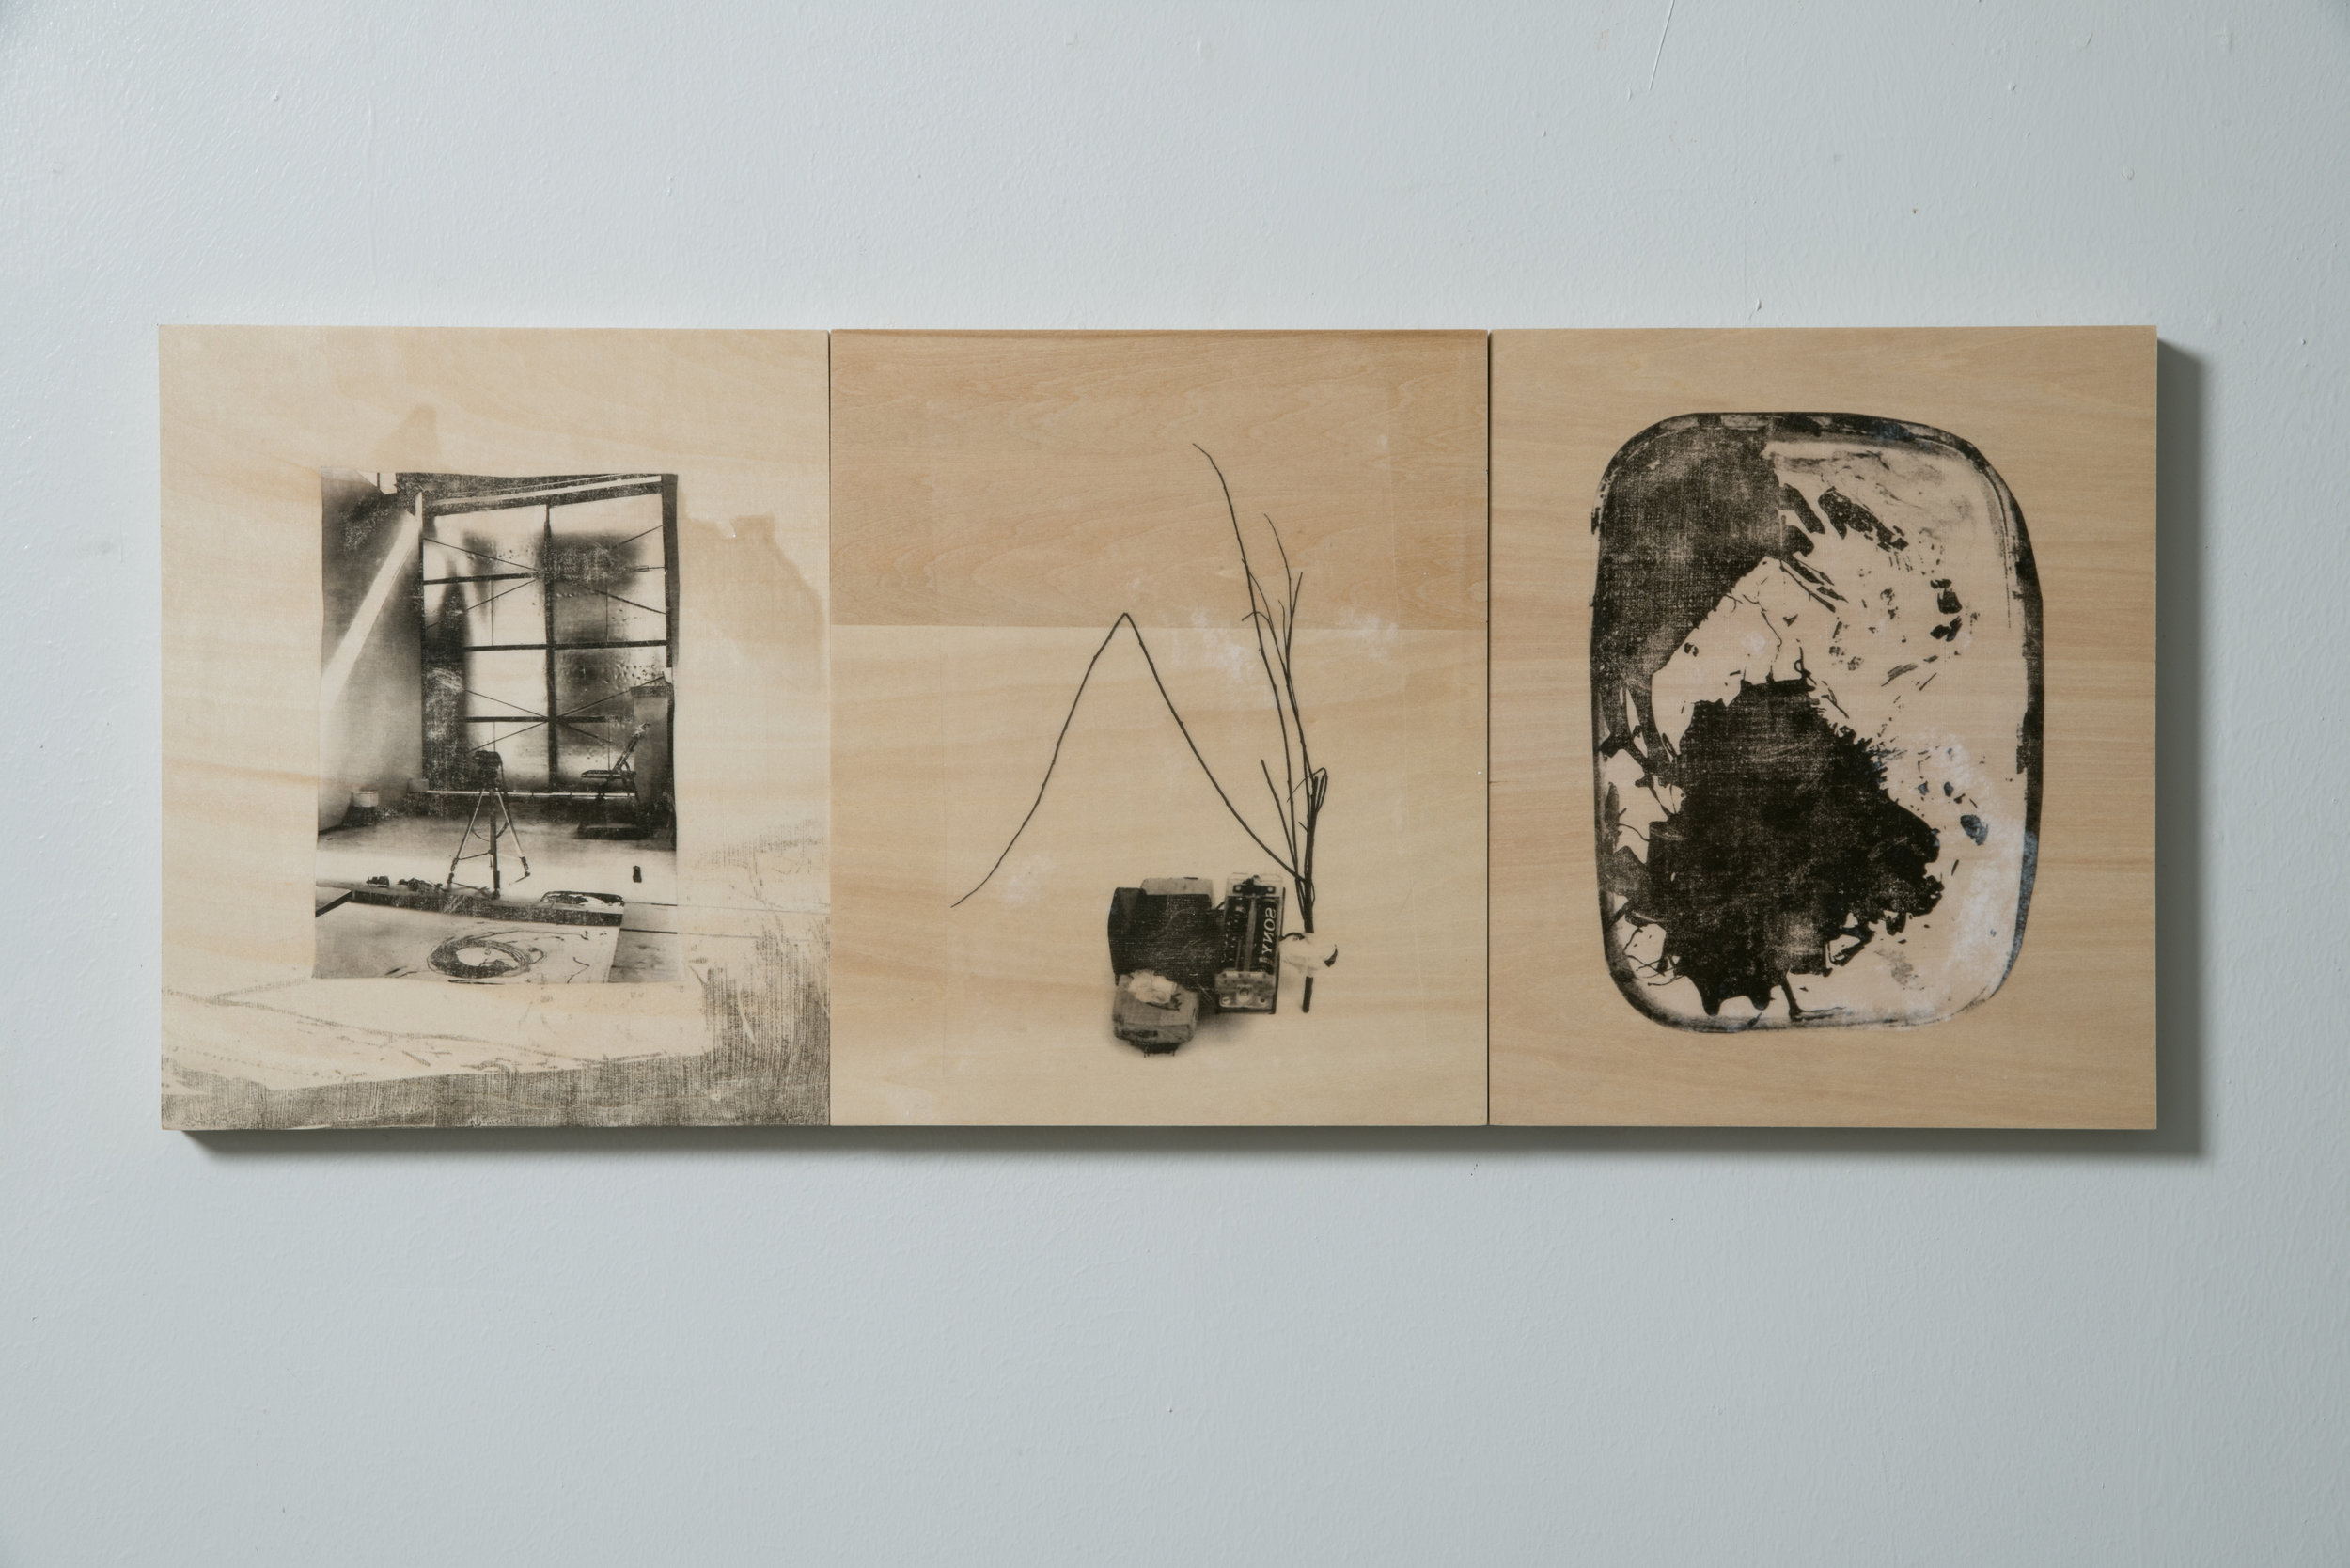 Youkobo Studio Process Robot Series #1-3 , 23 x 27 cm each, photo transfer on wood, 2013, Collection of Mr Justin Lee